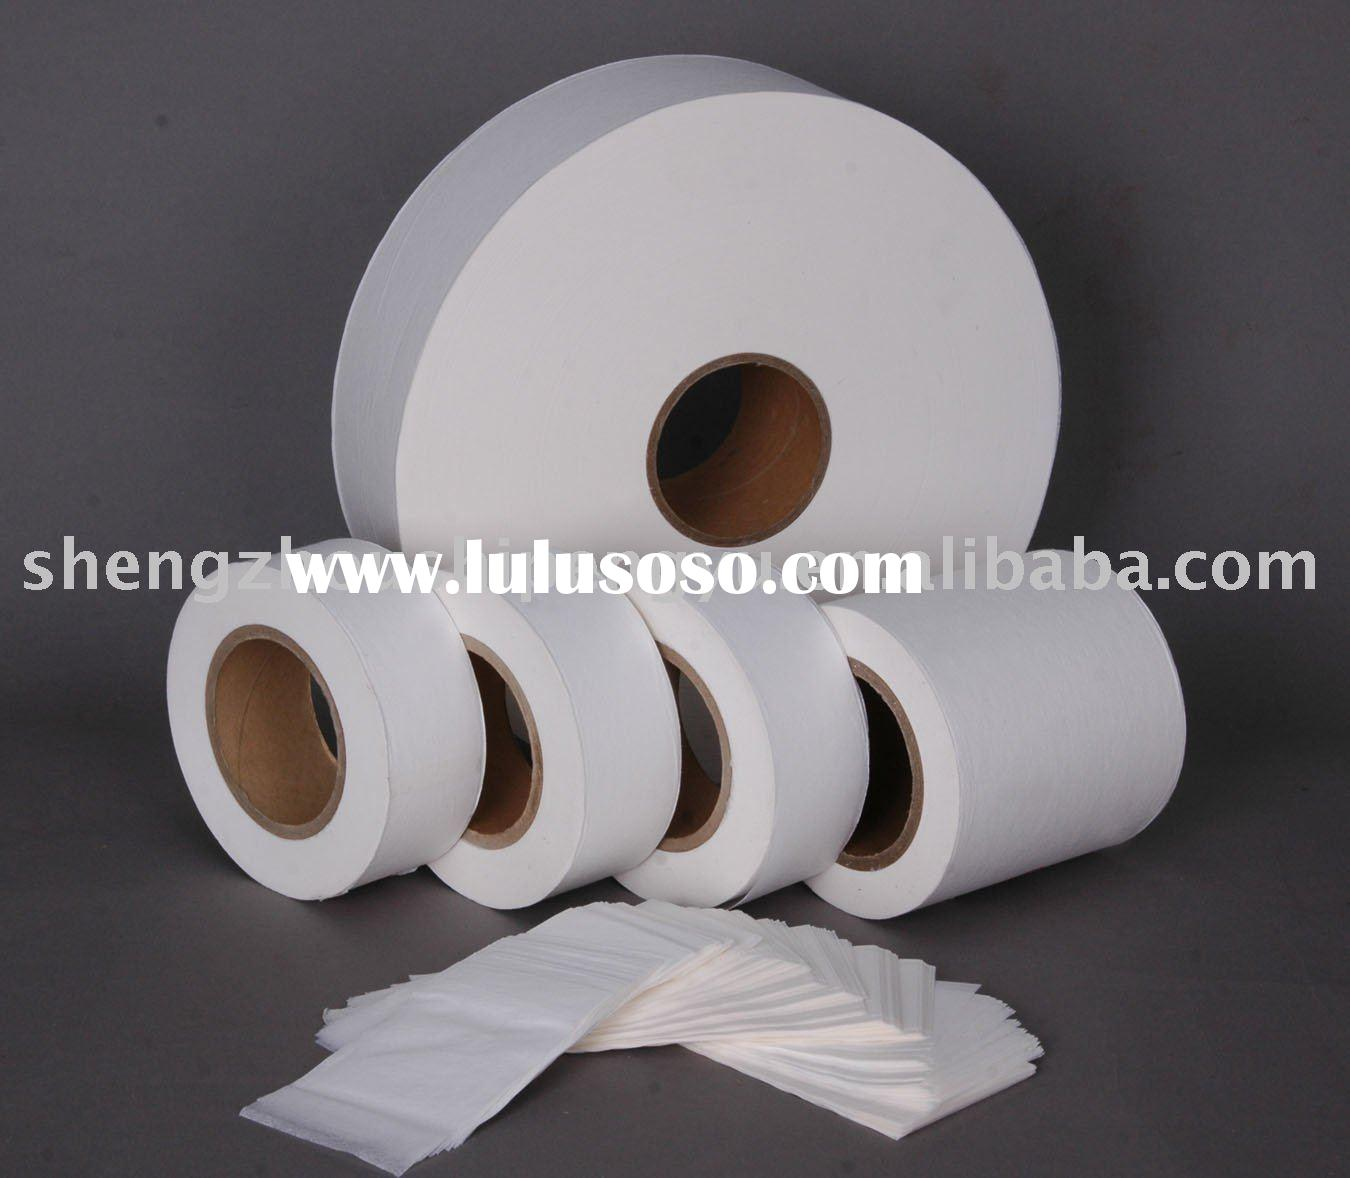 Heat sealable tea bag filter paper